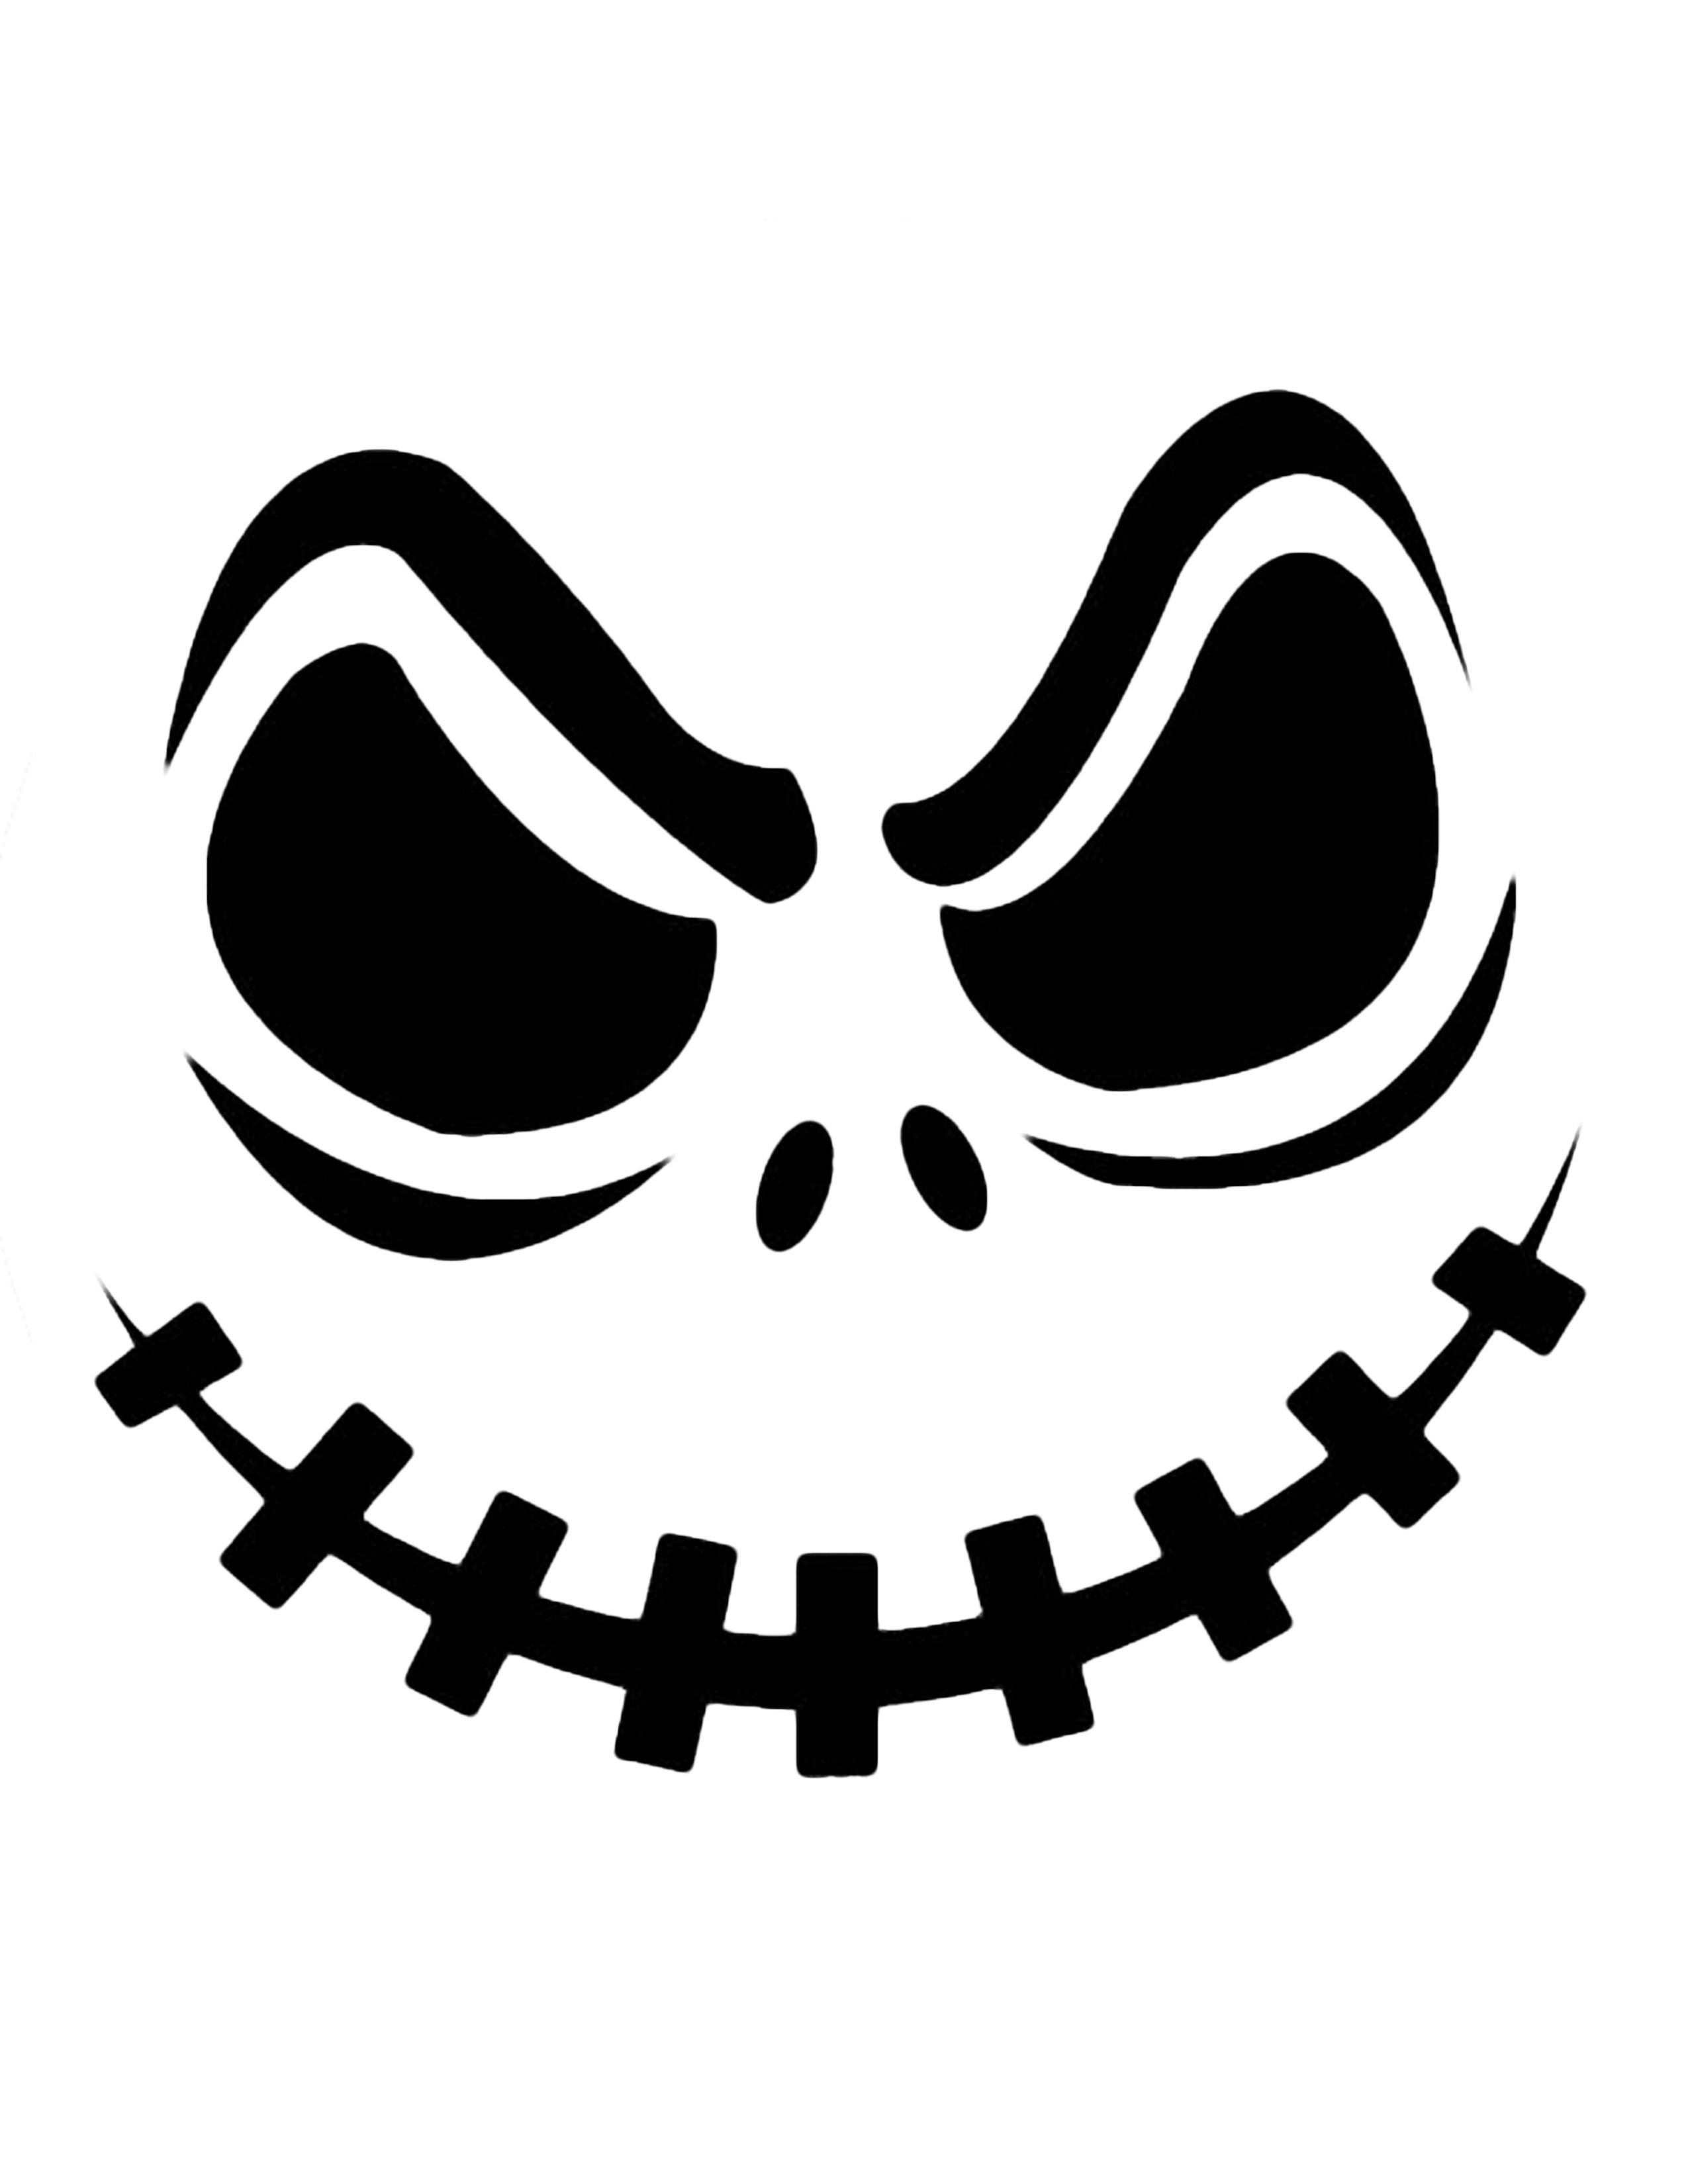 photo about Jack Skellington Pumpkin Stencils Free Printable referred to as Cost-free Printable Pumpkin Stencils Totally free Printable